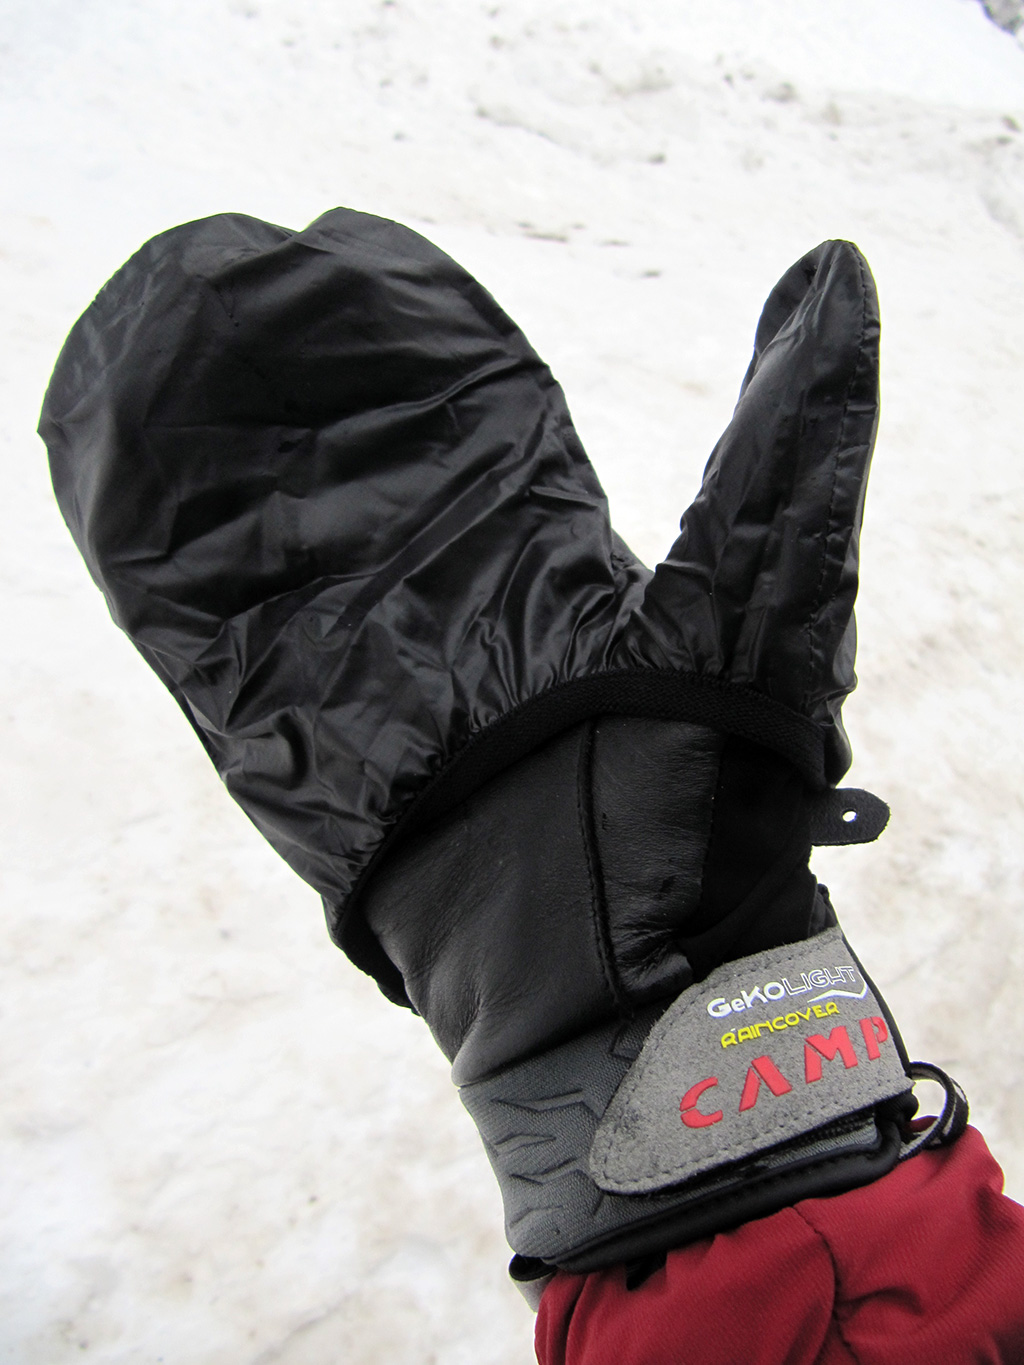 Light Gants Raincover Test Camp Geko Alpinisme UIRnxSqd